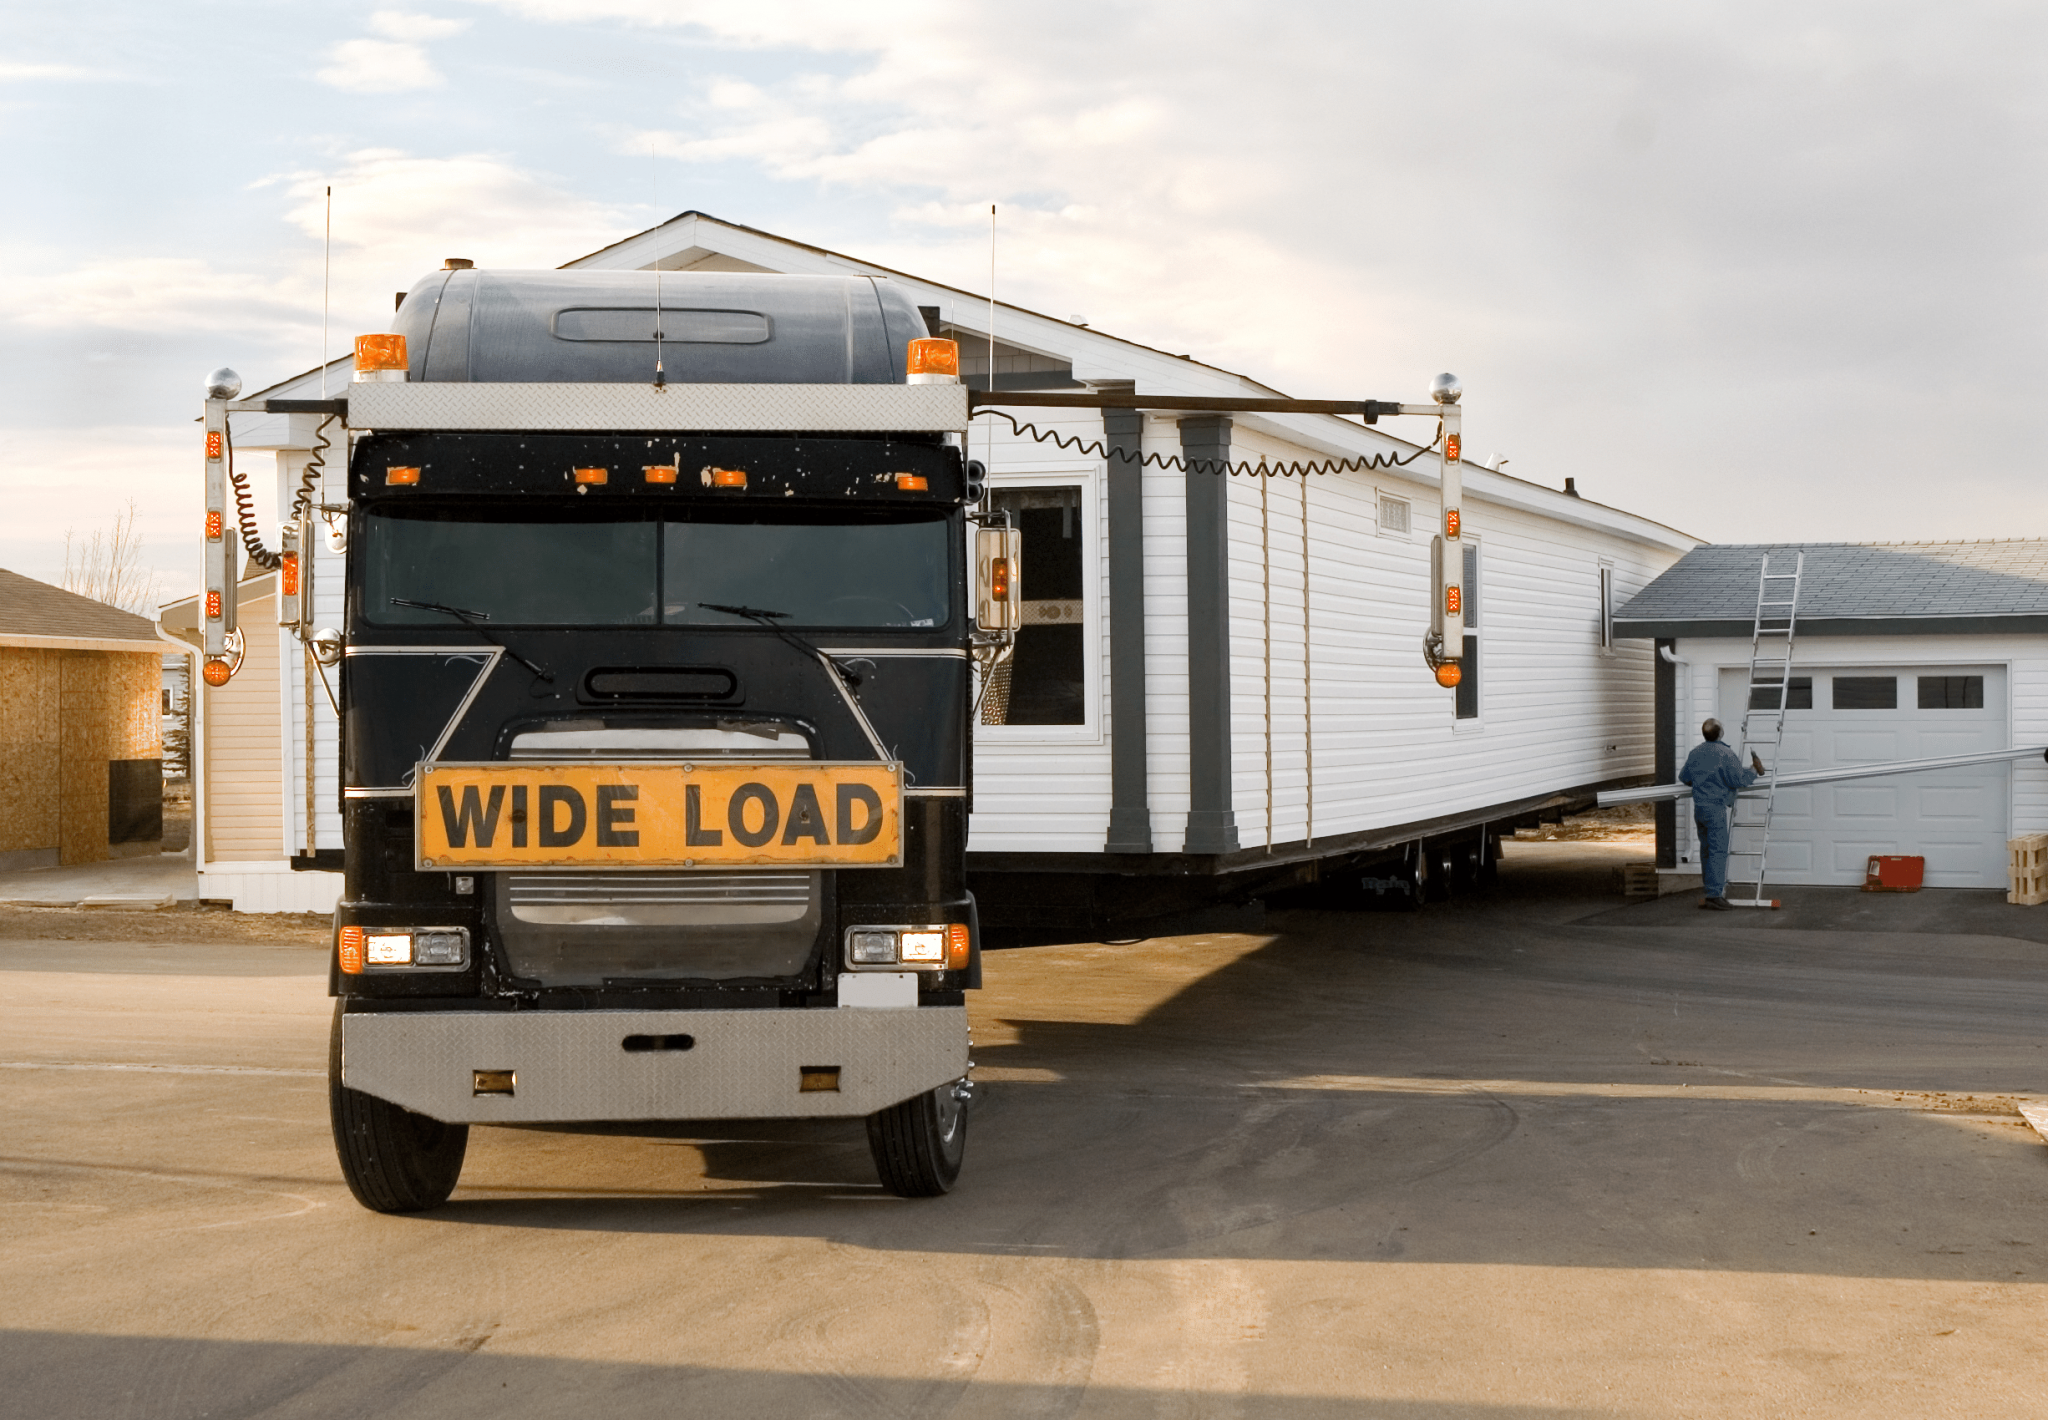 A mobile home being moved